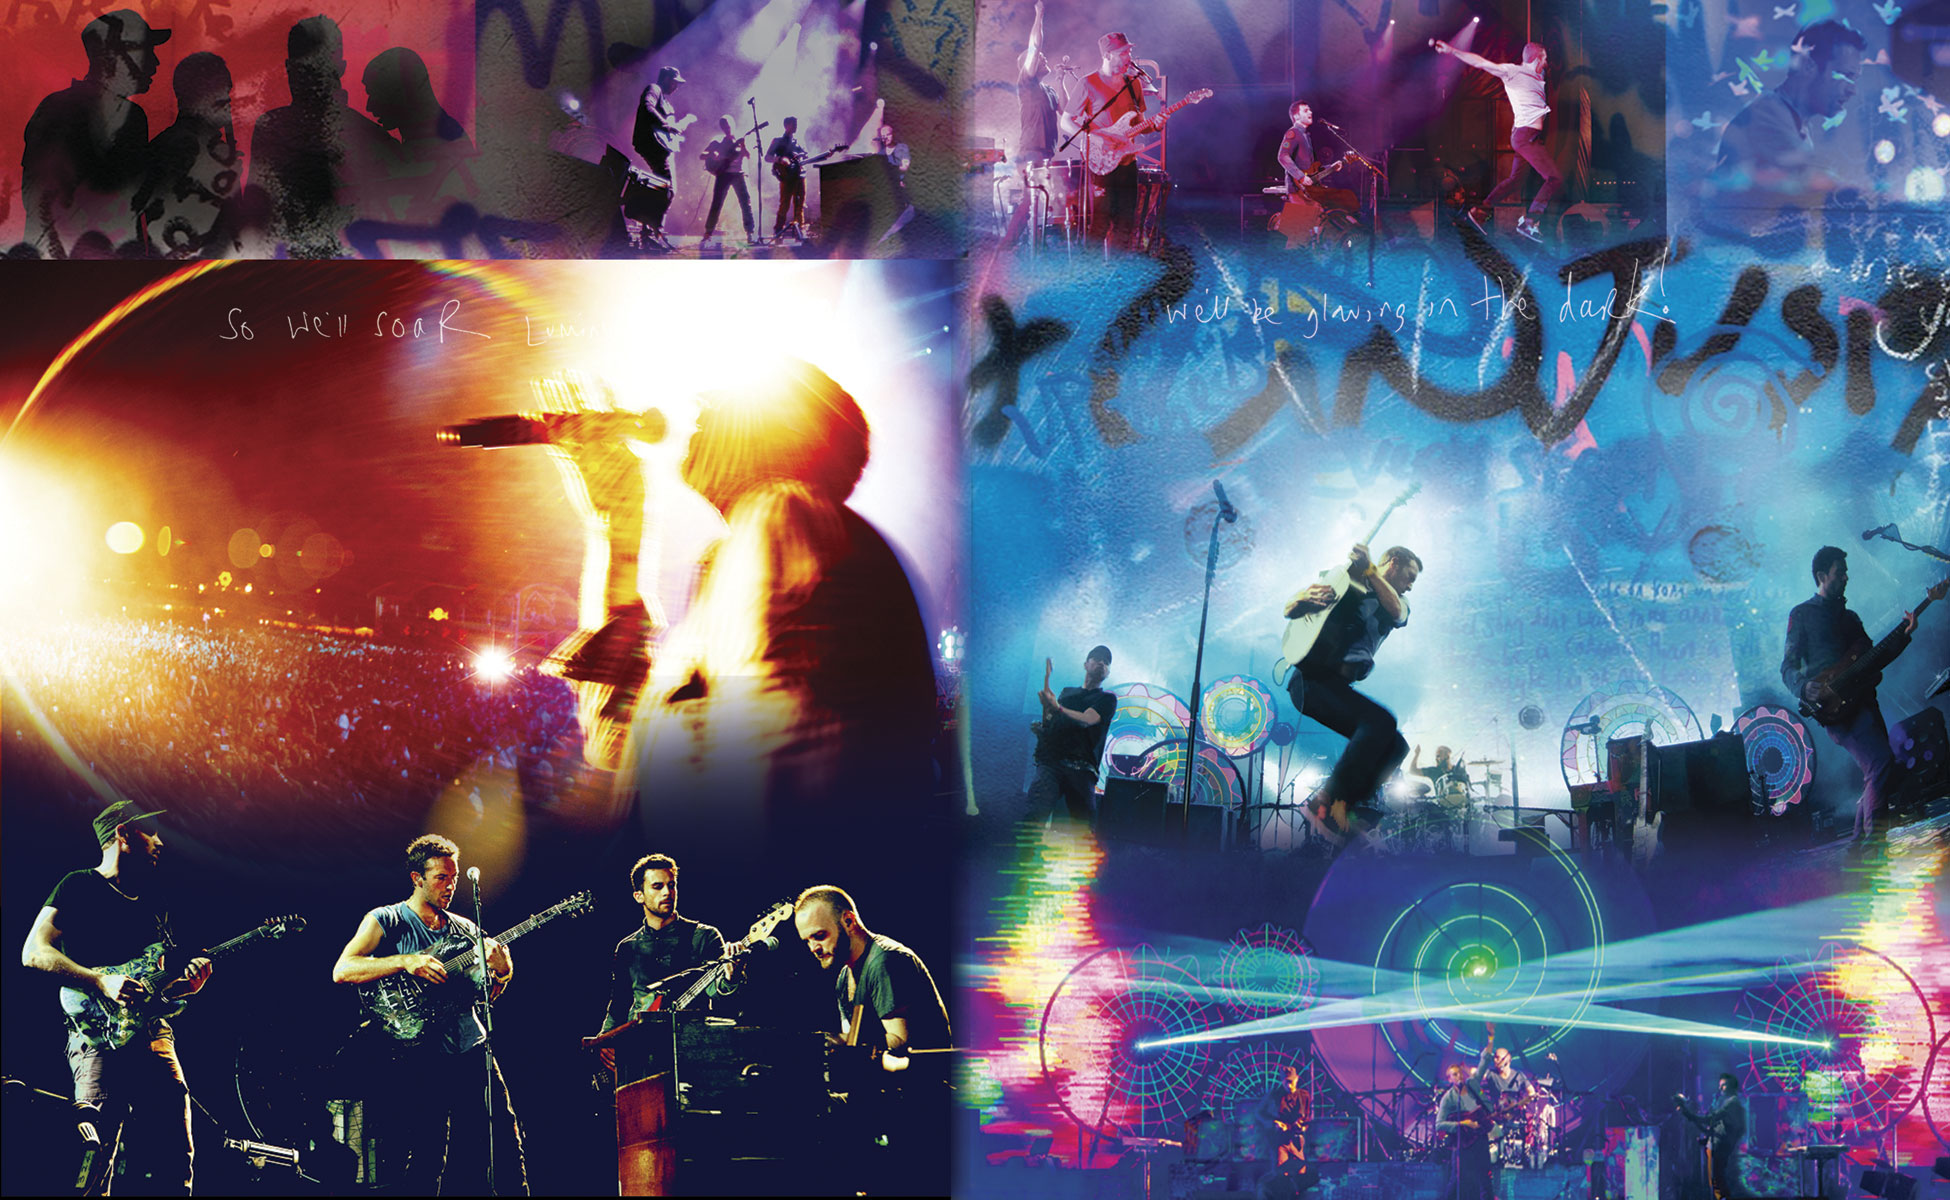 Coldplay Live Consert Wallpaper Pc